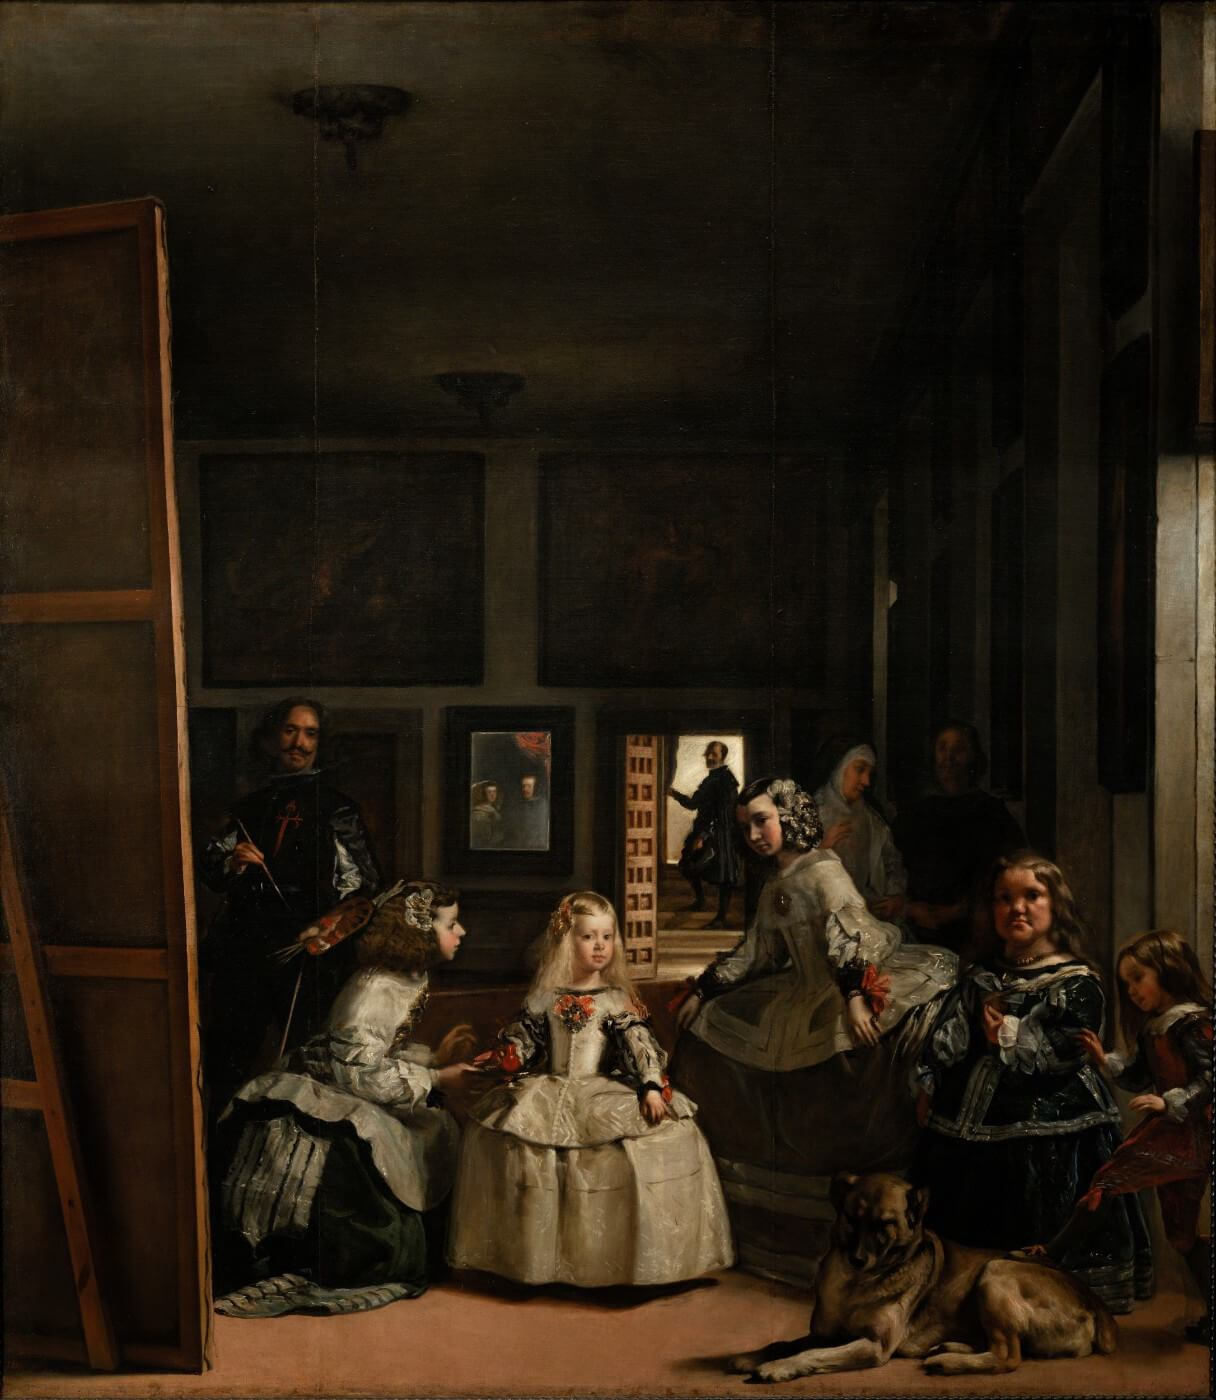 Las Meninas - (The Ladies-in-waiting) - Life Size Posters